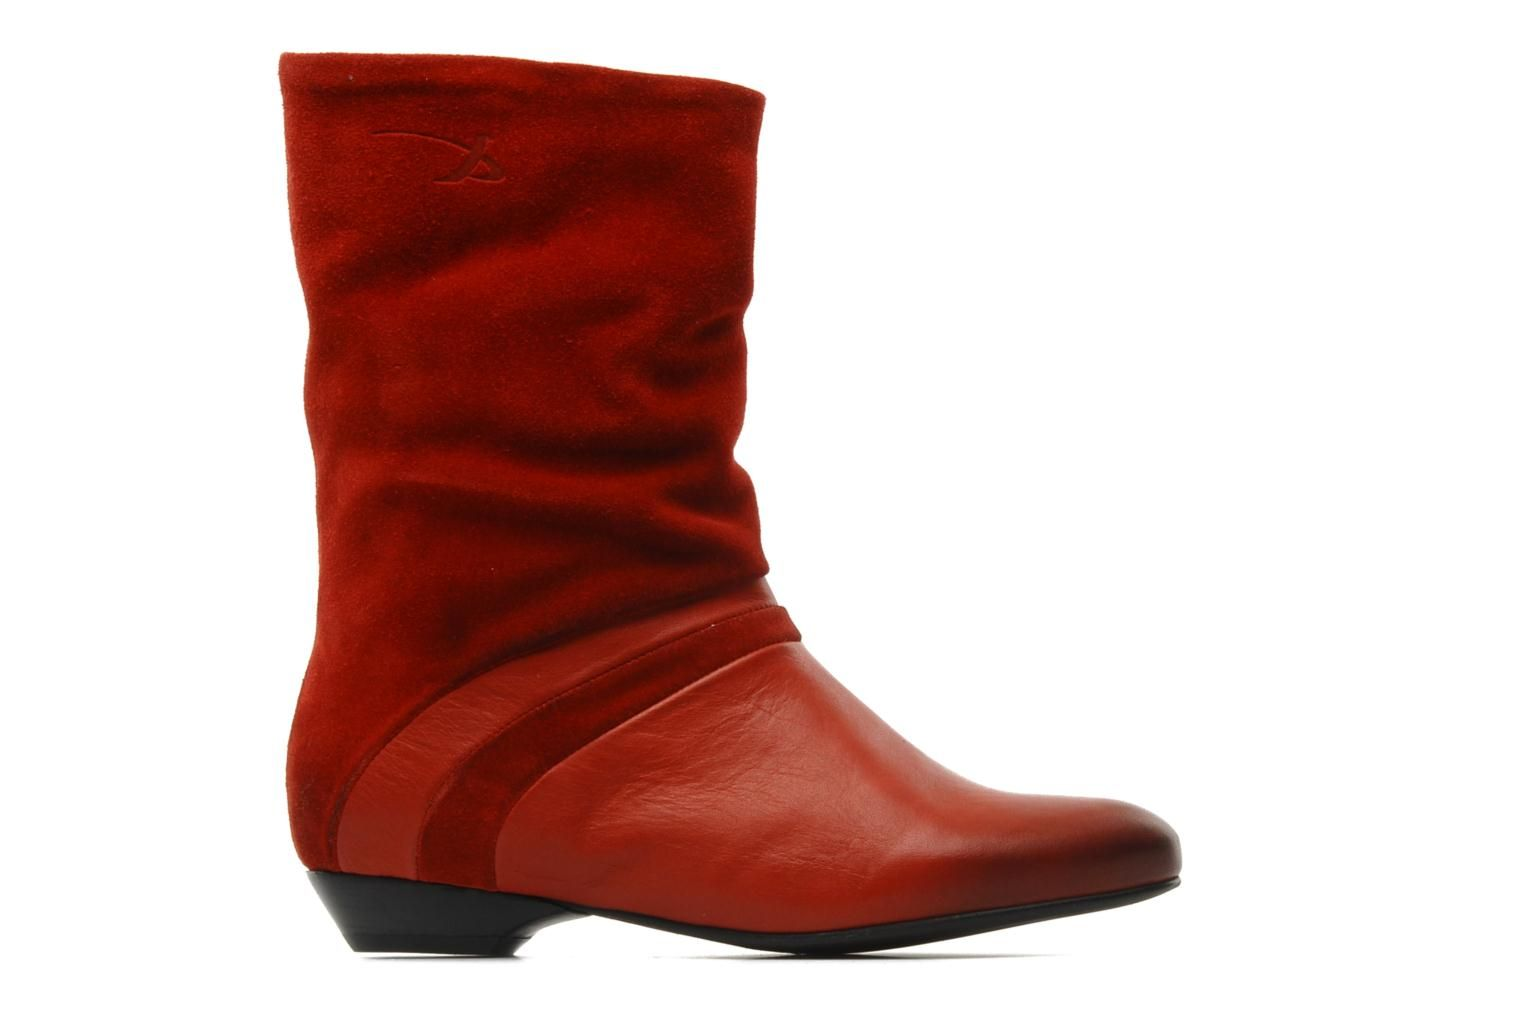 The hunt continues, red boots.